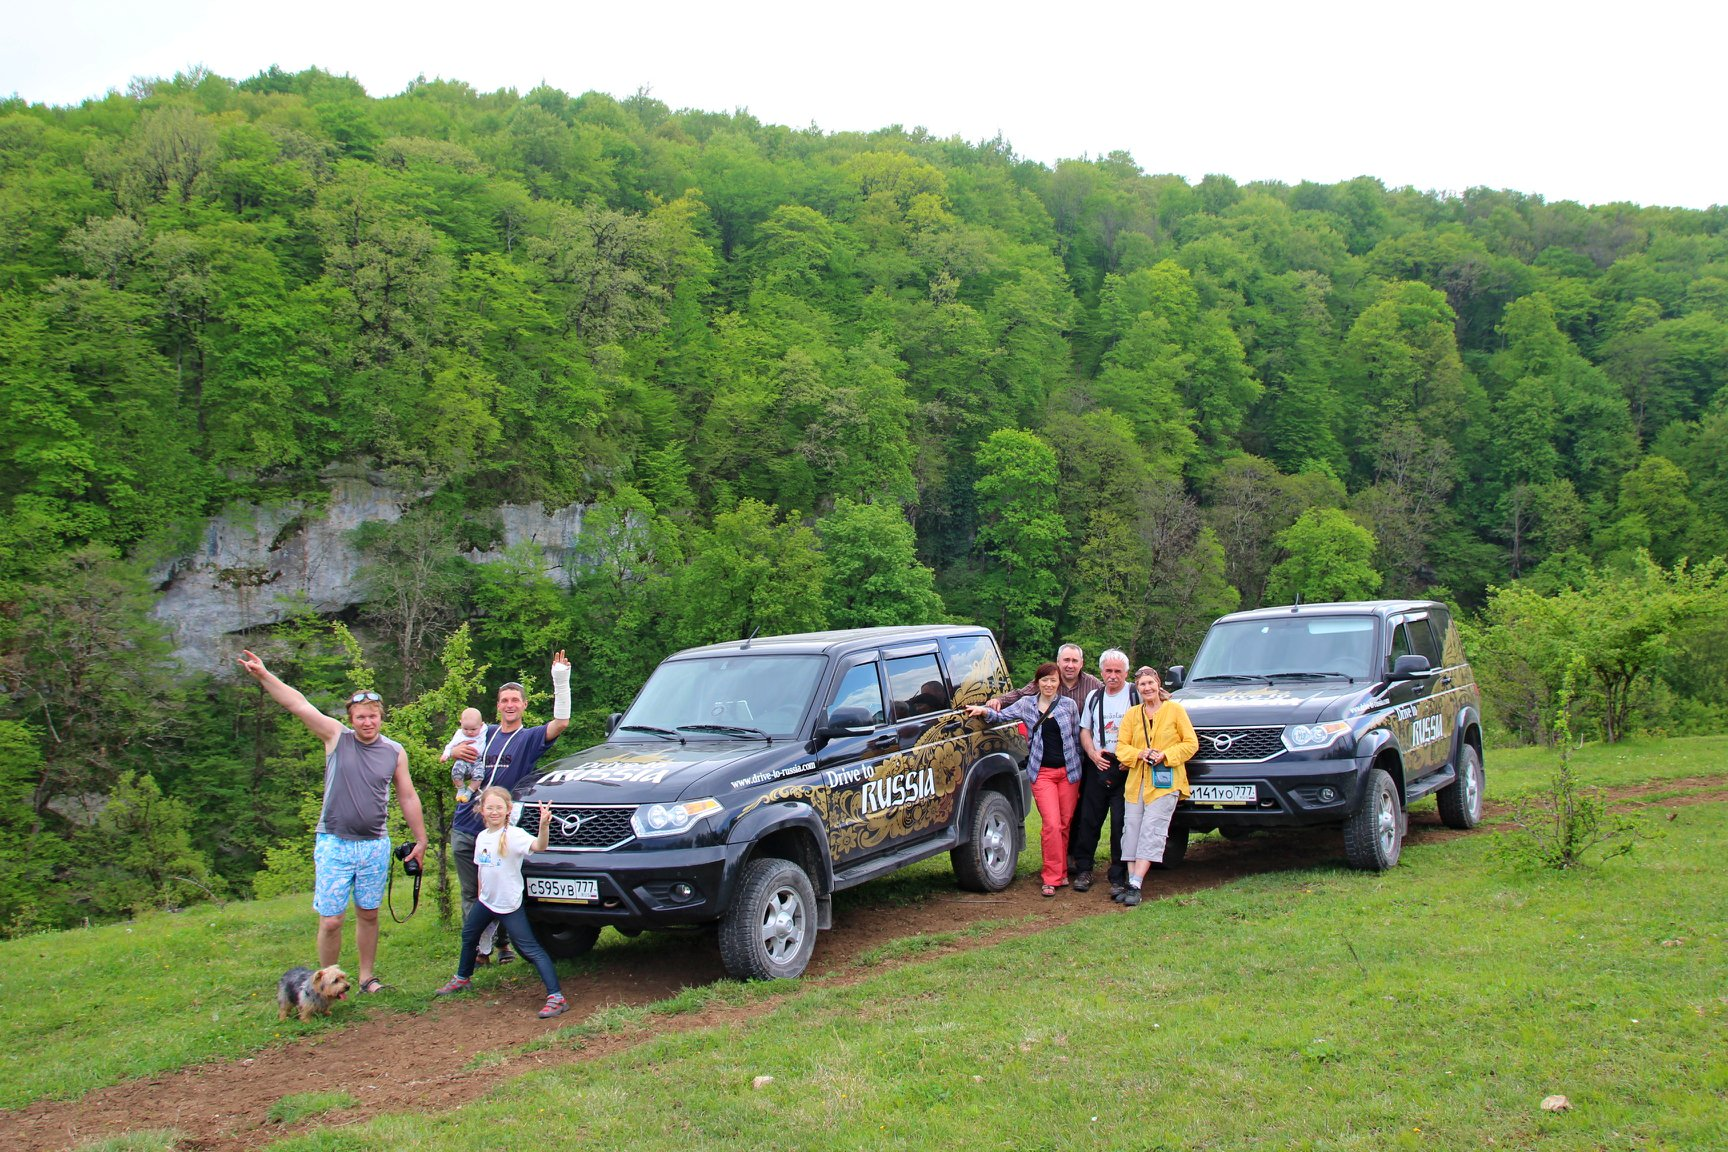 From Moscow to Adygeya by modern UAZ Patriot